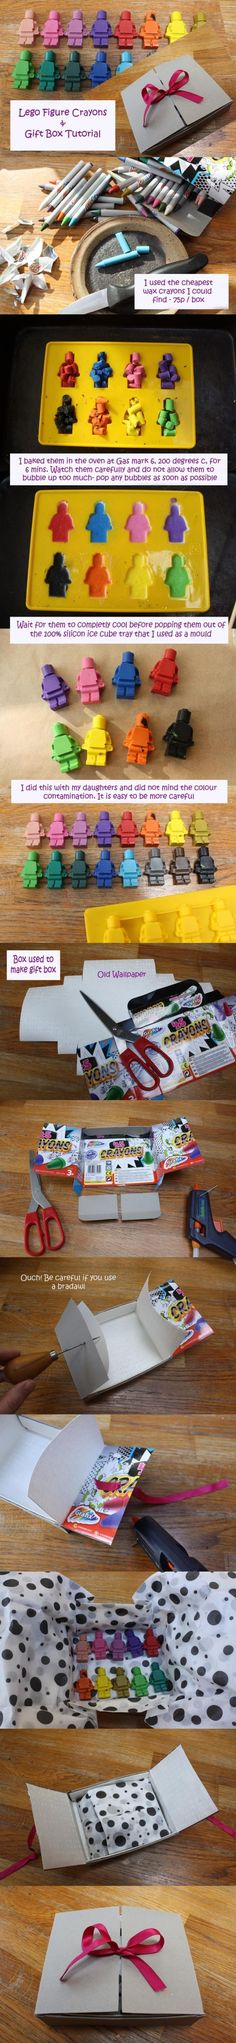 Make It: Lego Man Crayons - Tutorial #kids by Divonsir Borges